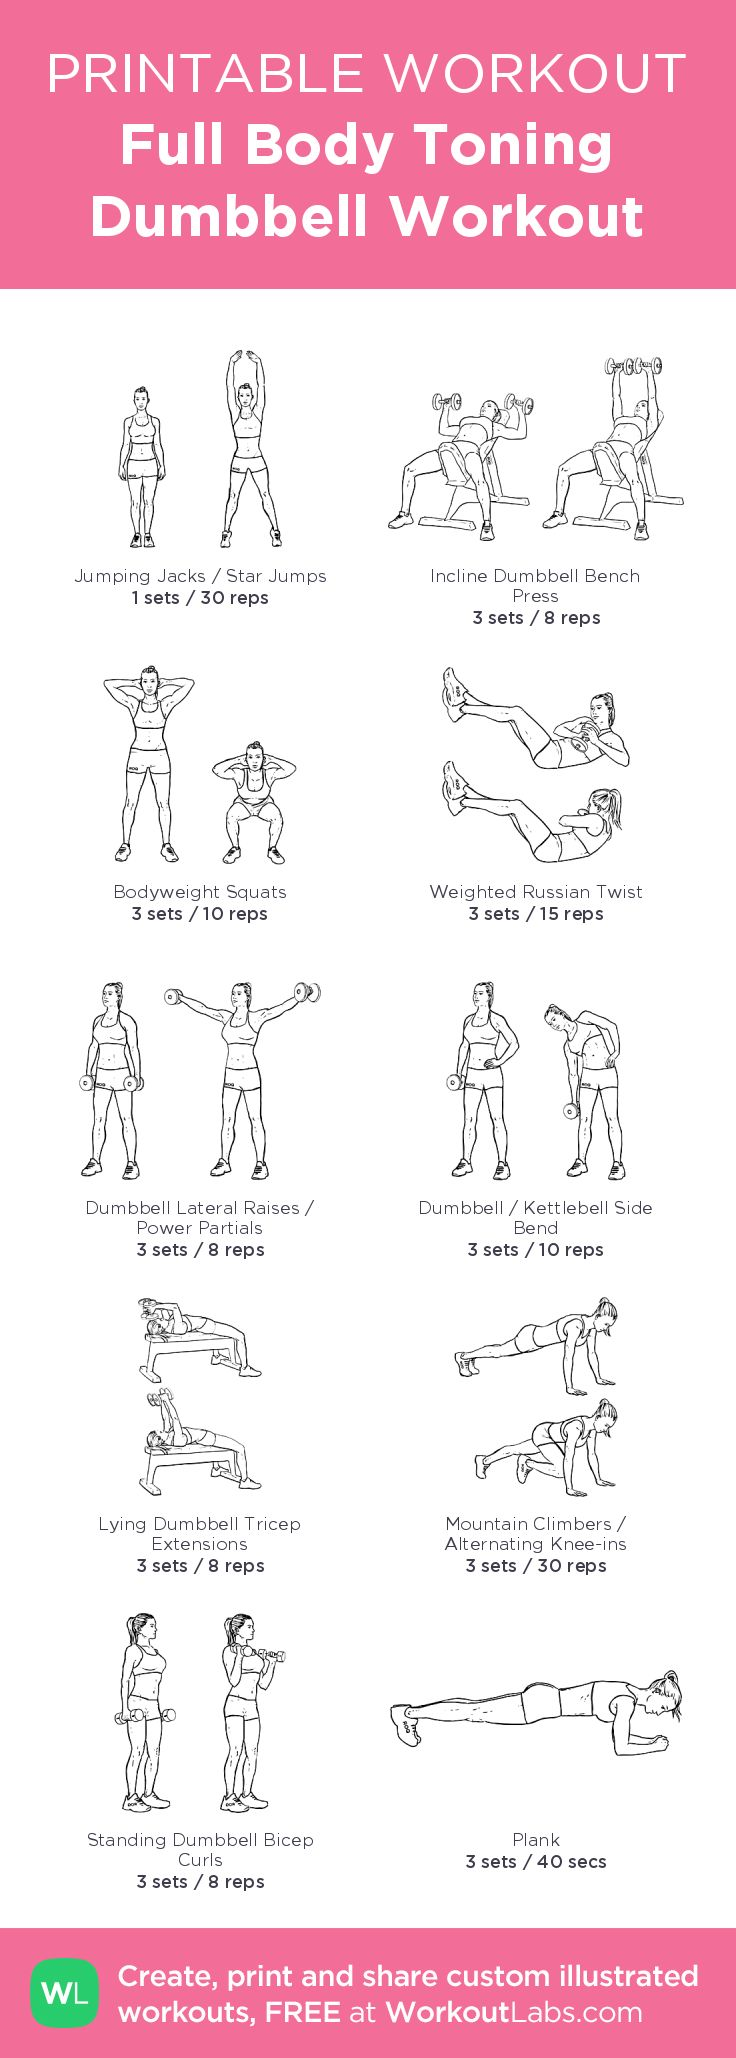 A report on exercises with dumbbells